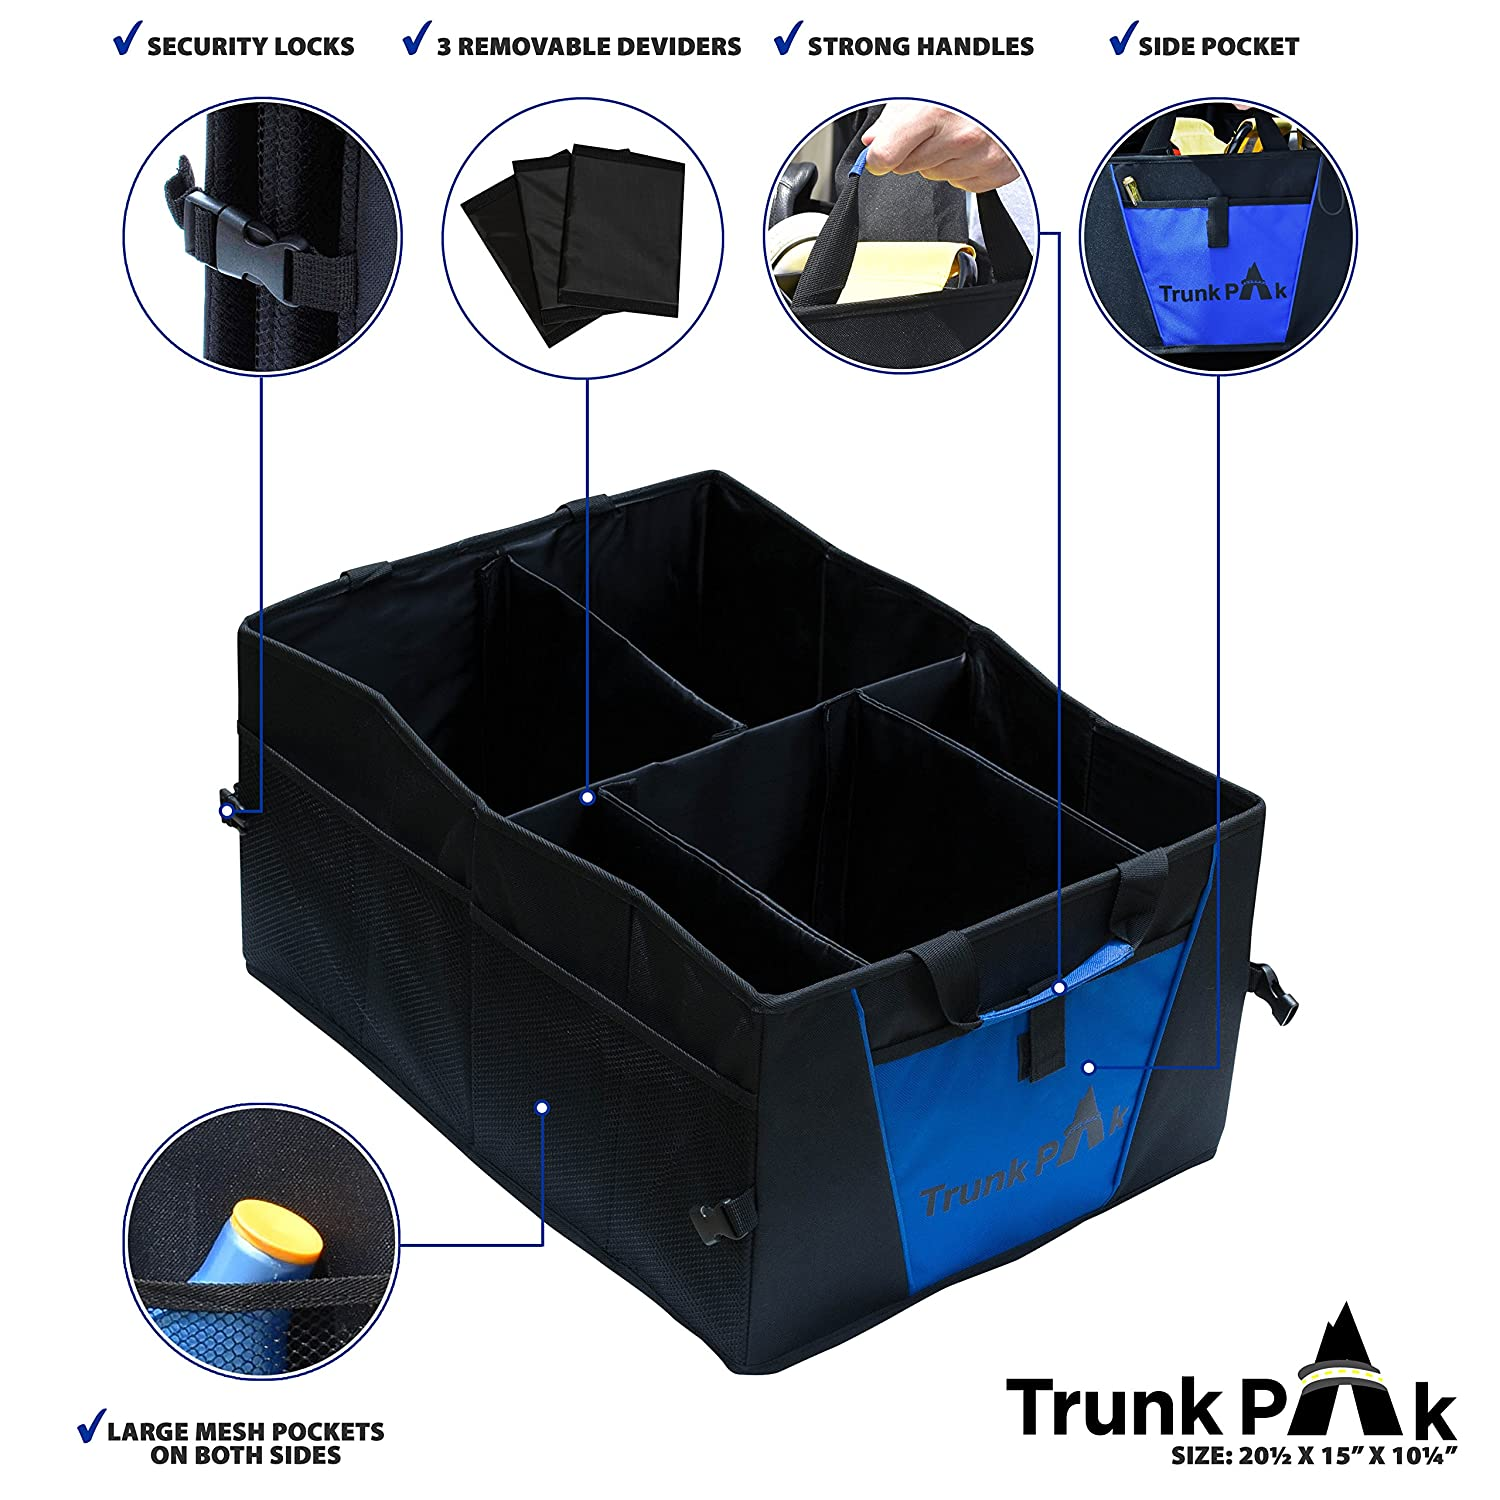 Vehicle Storage /& Car Trunk Box Auto Home Use Collapsible Car Organizer All Types Vehicles Heavy Duty Fabric Steady Cardboard Blue /& Black 5 Compartments TRUNKPAK Trunk Organizer